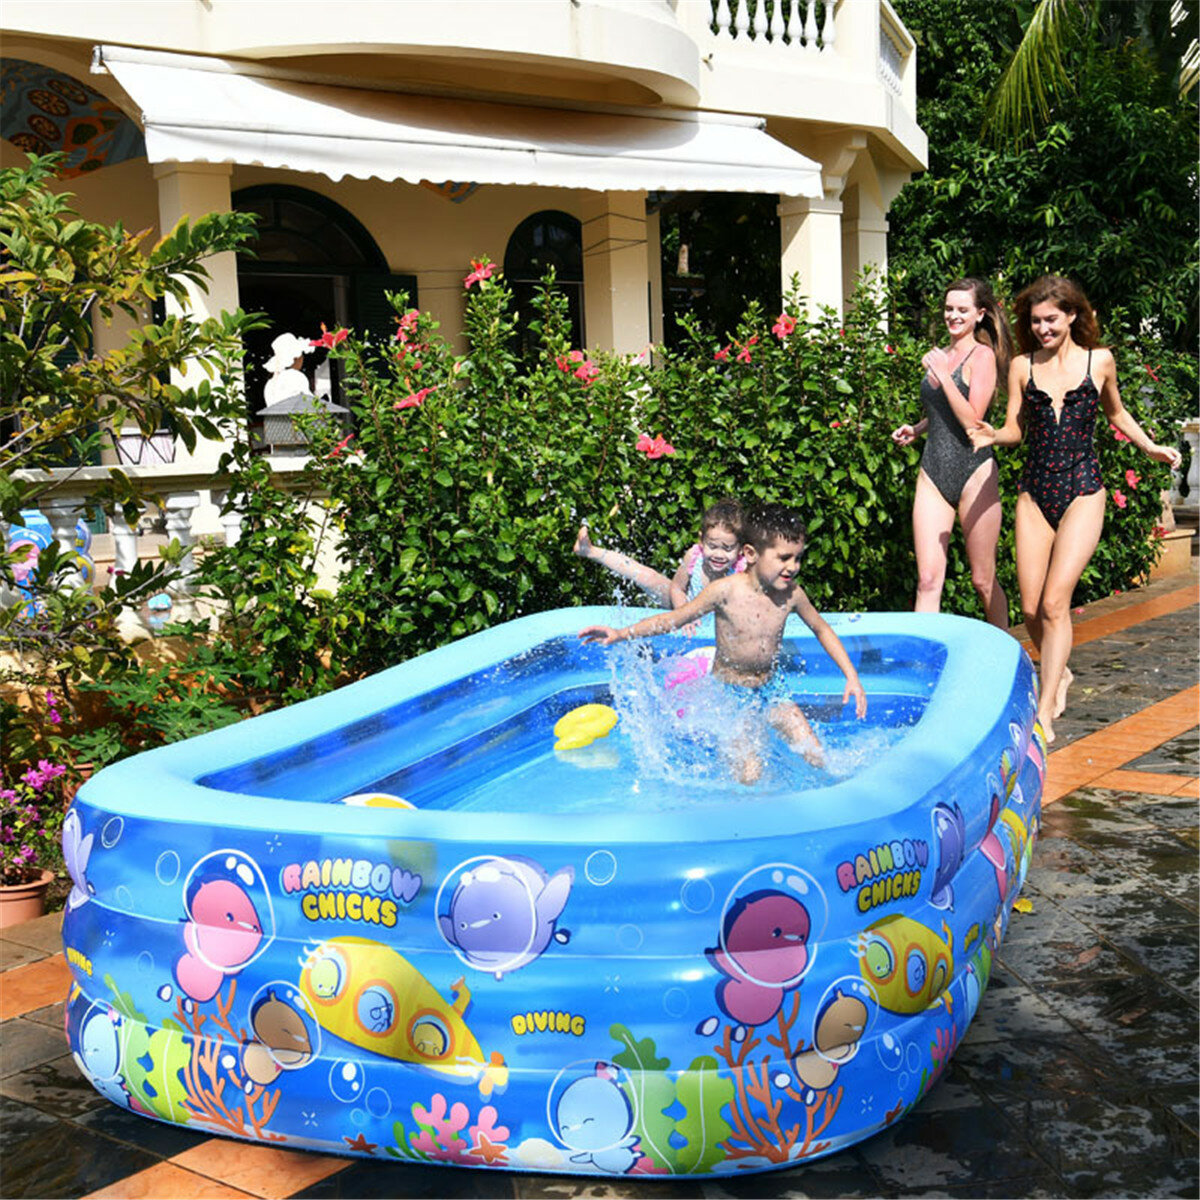 Inflatable Swimming Pool Children Family Pool Adult Paddling Pool Cartoon Chick Rainbow Pool